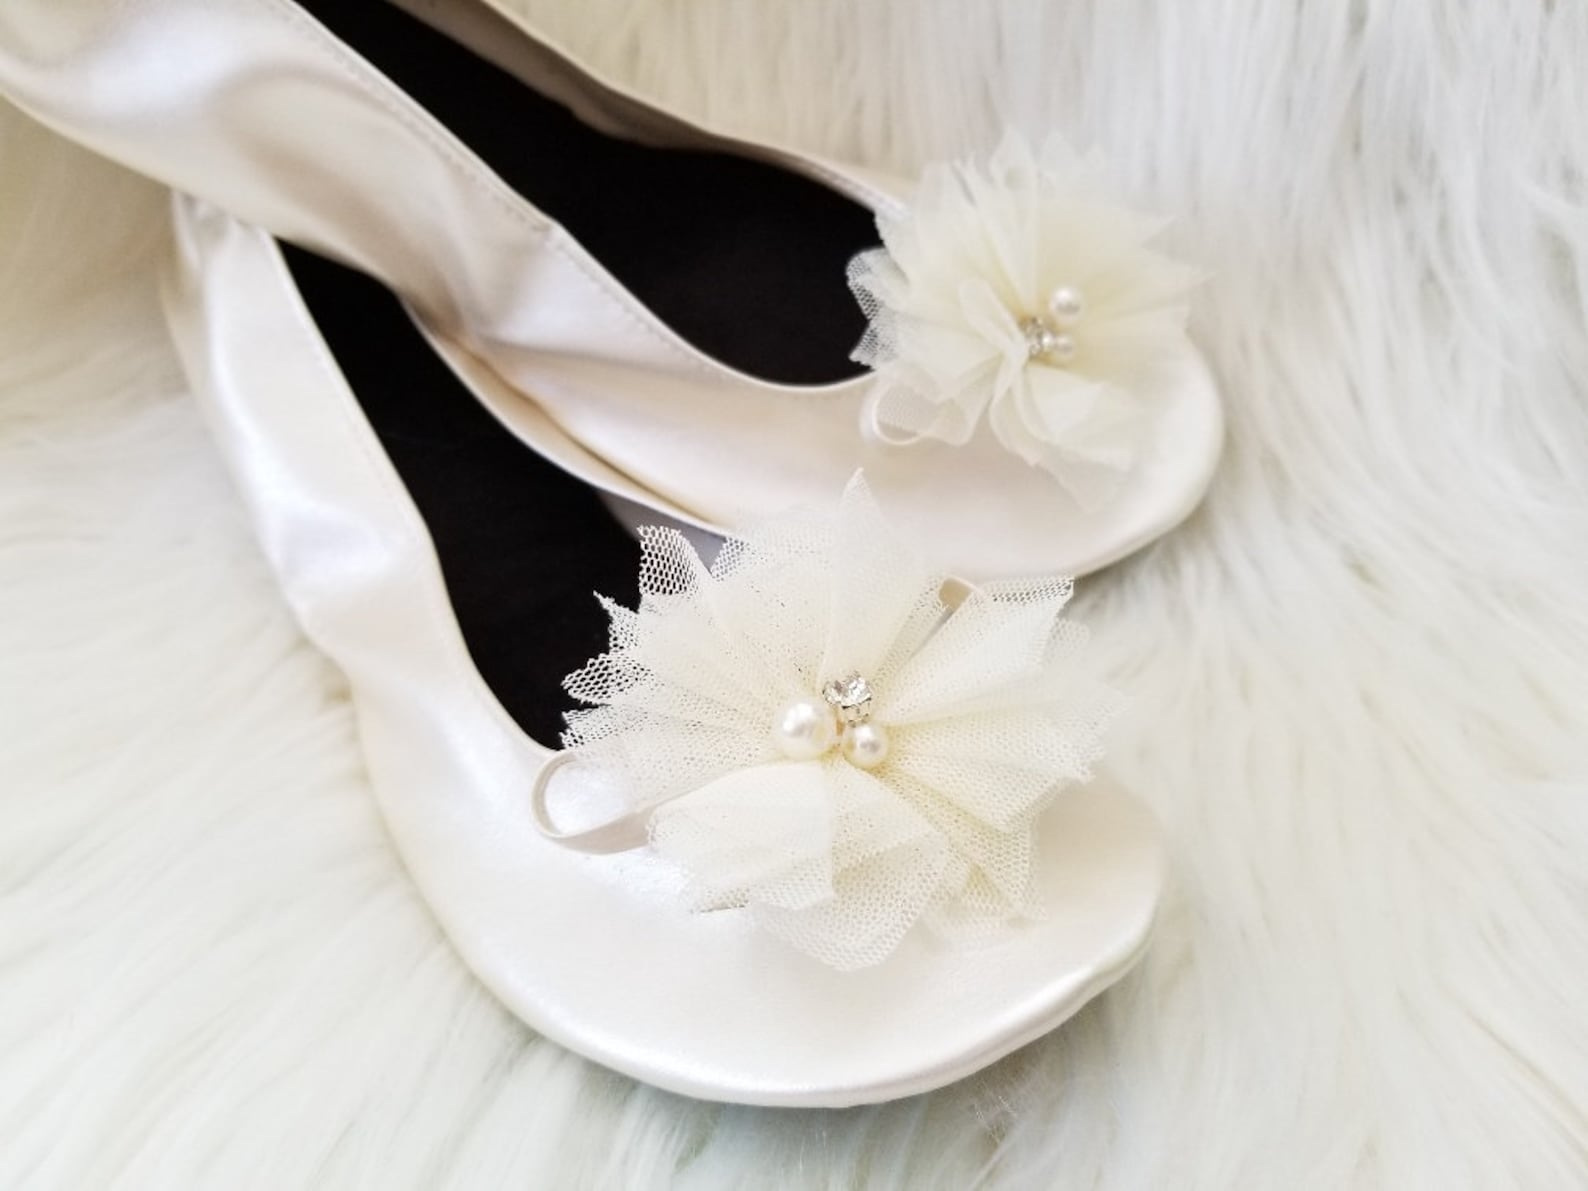 bridesmaid slippers, bridal flats, wedding flats, bridesmaids flats, wedding slippers, ballet flats, foldable flats, party slipp